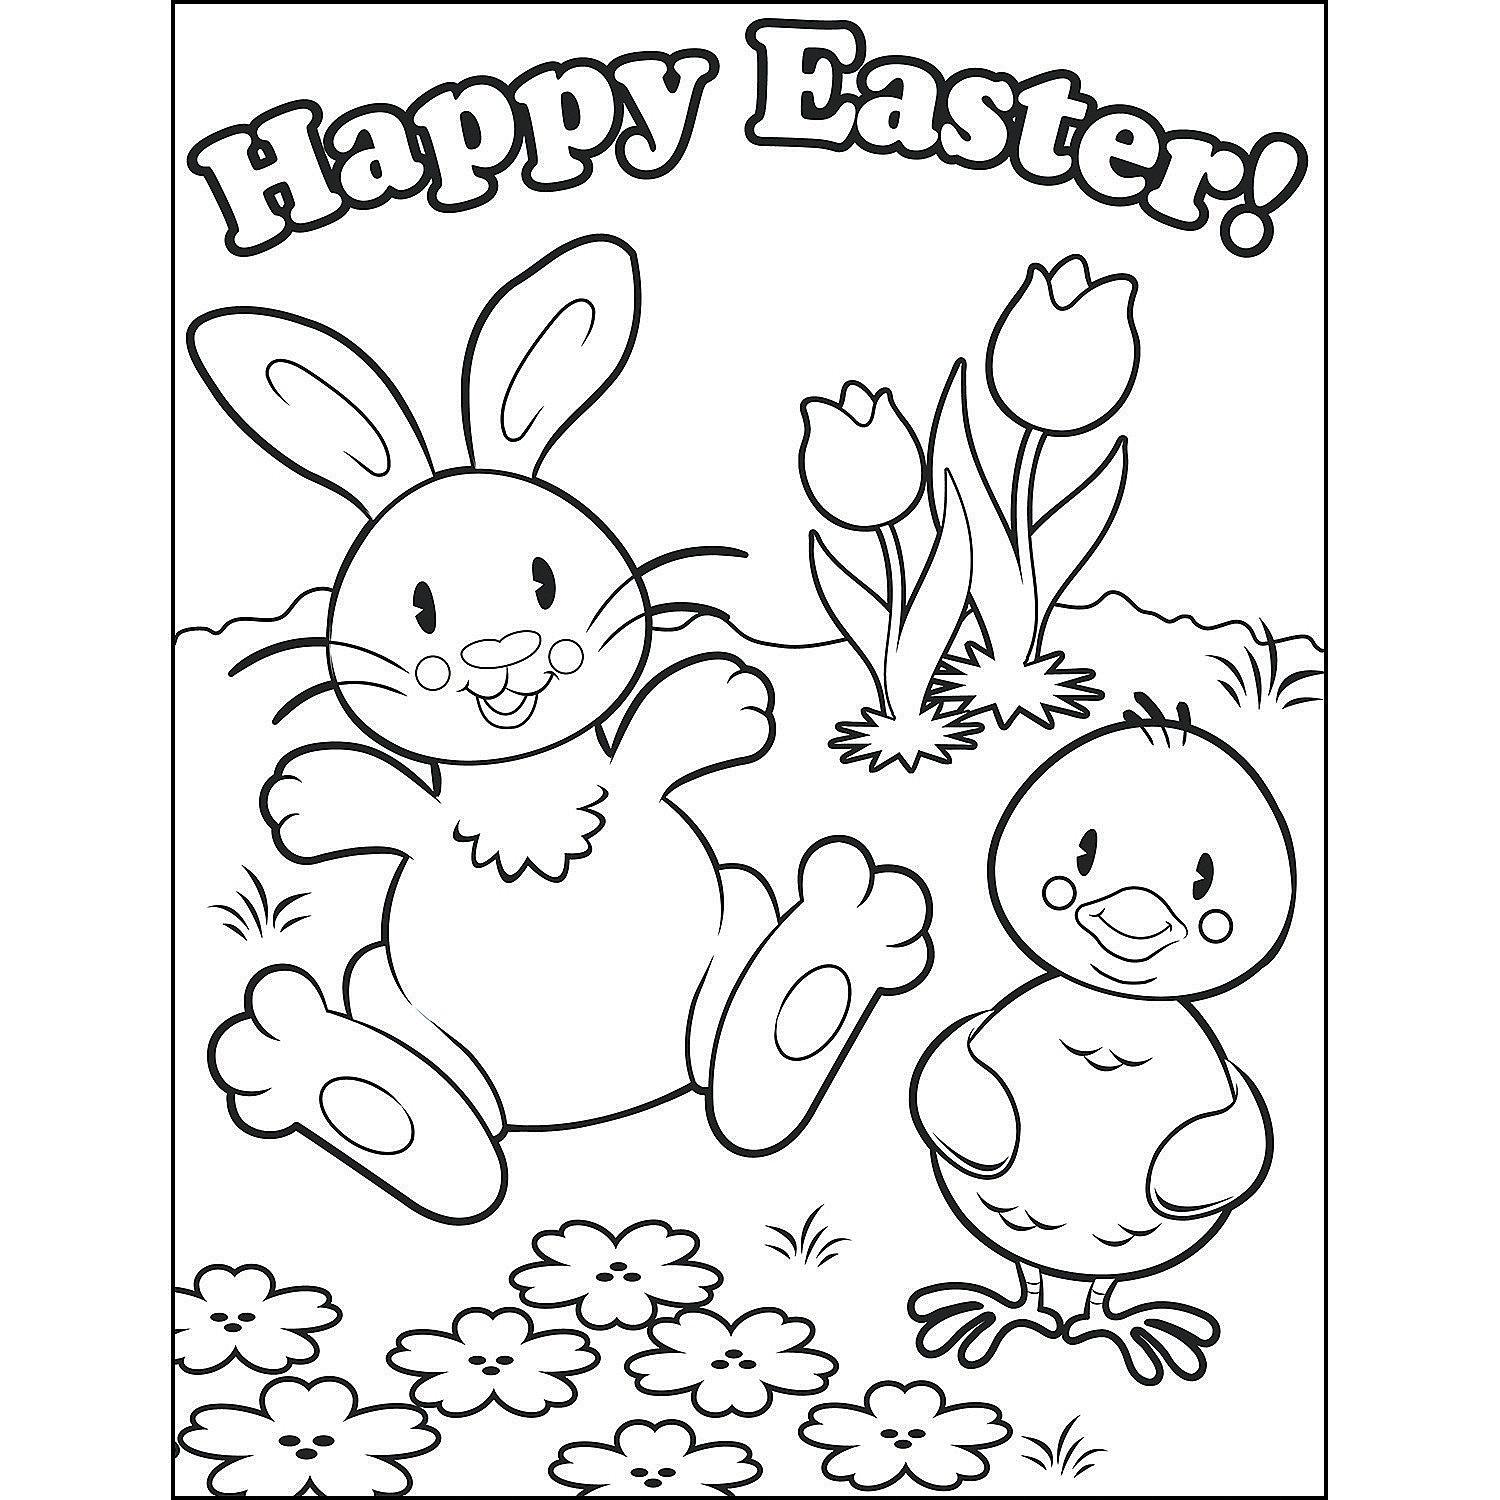 Happy Easter Coloring Pages At Getdrawings